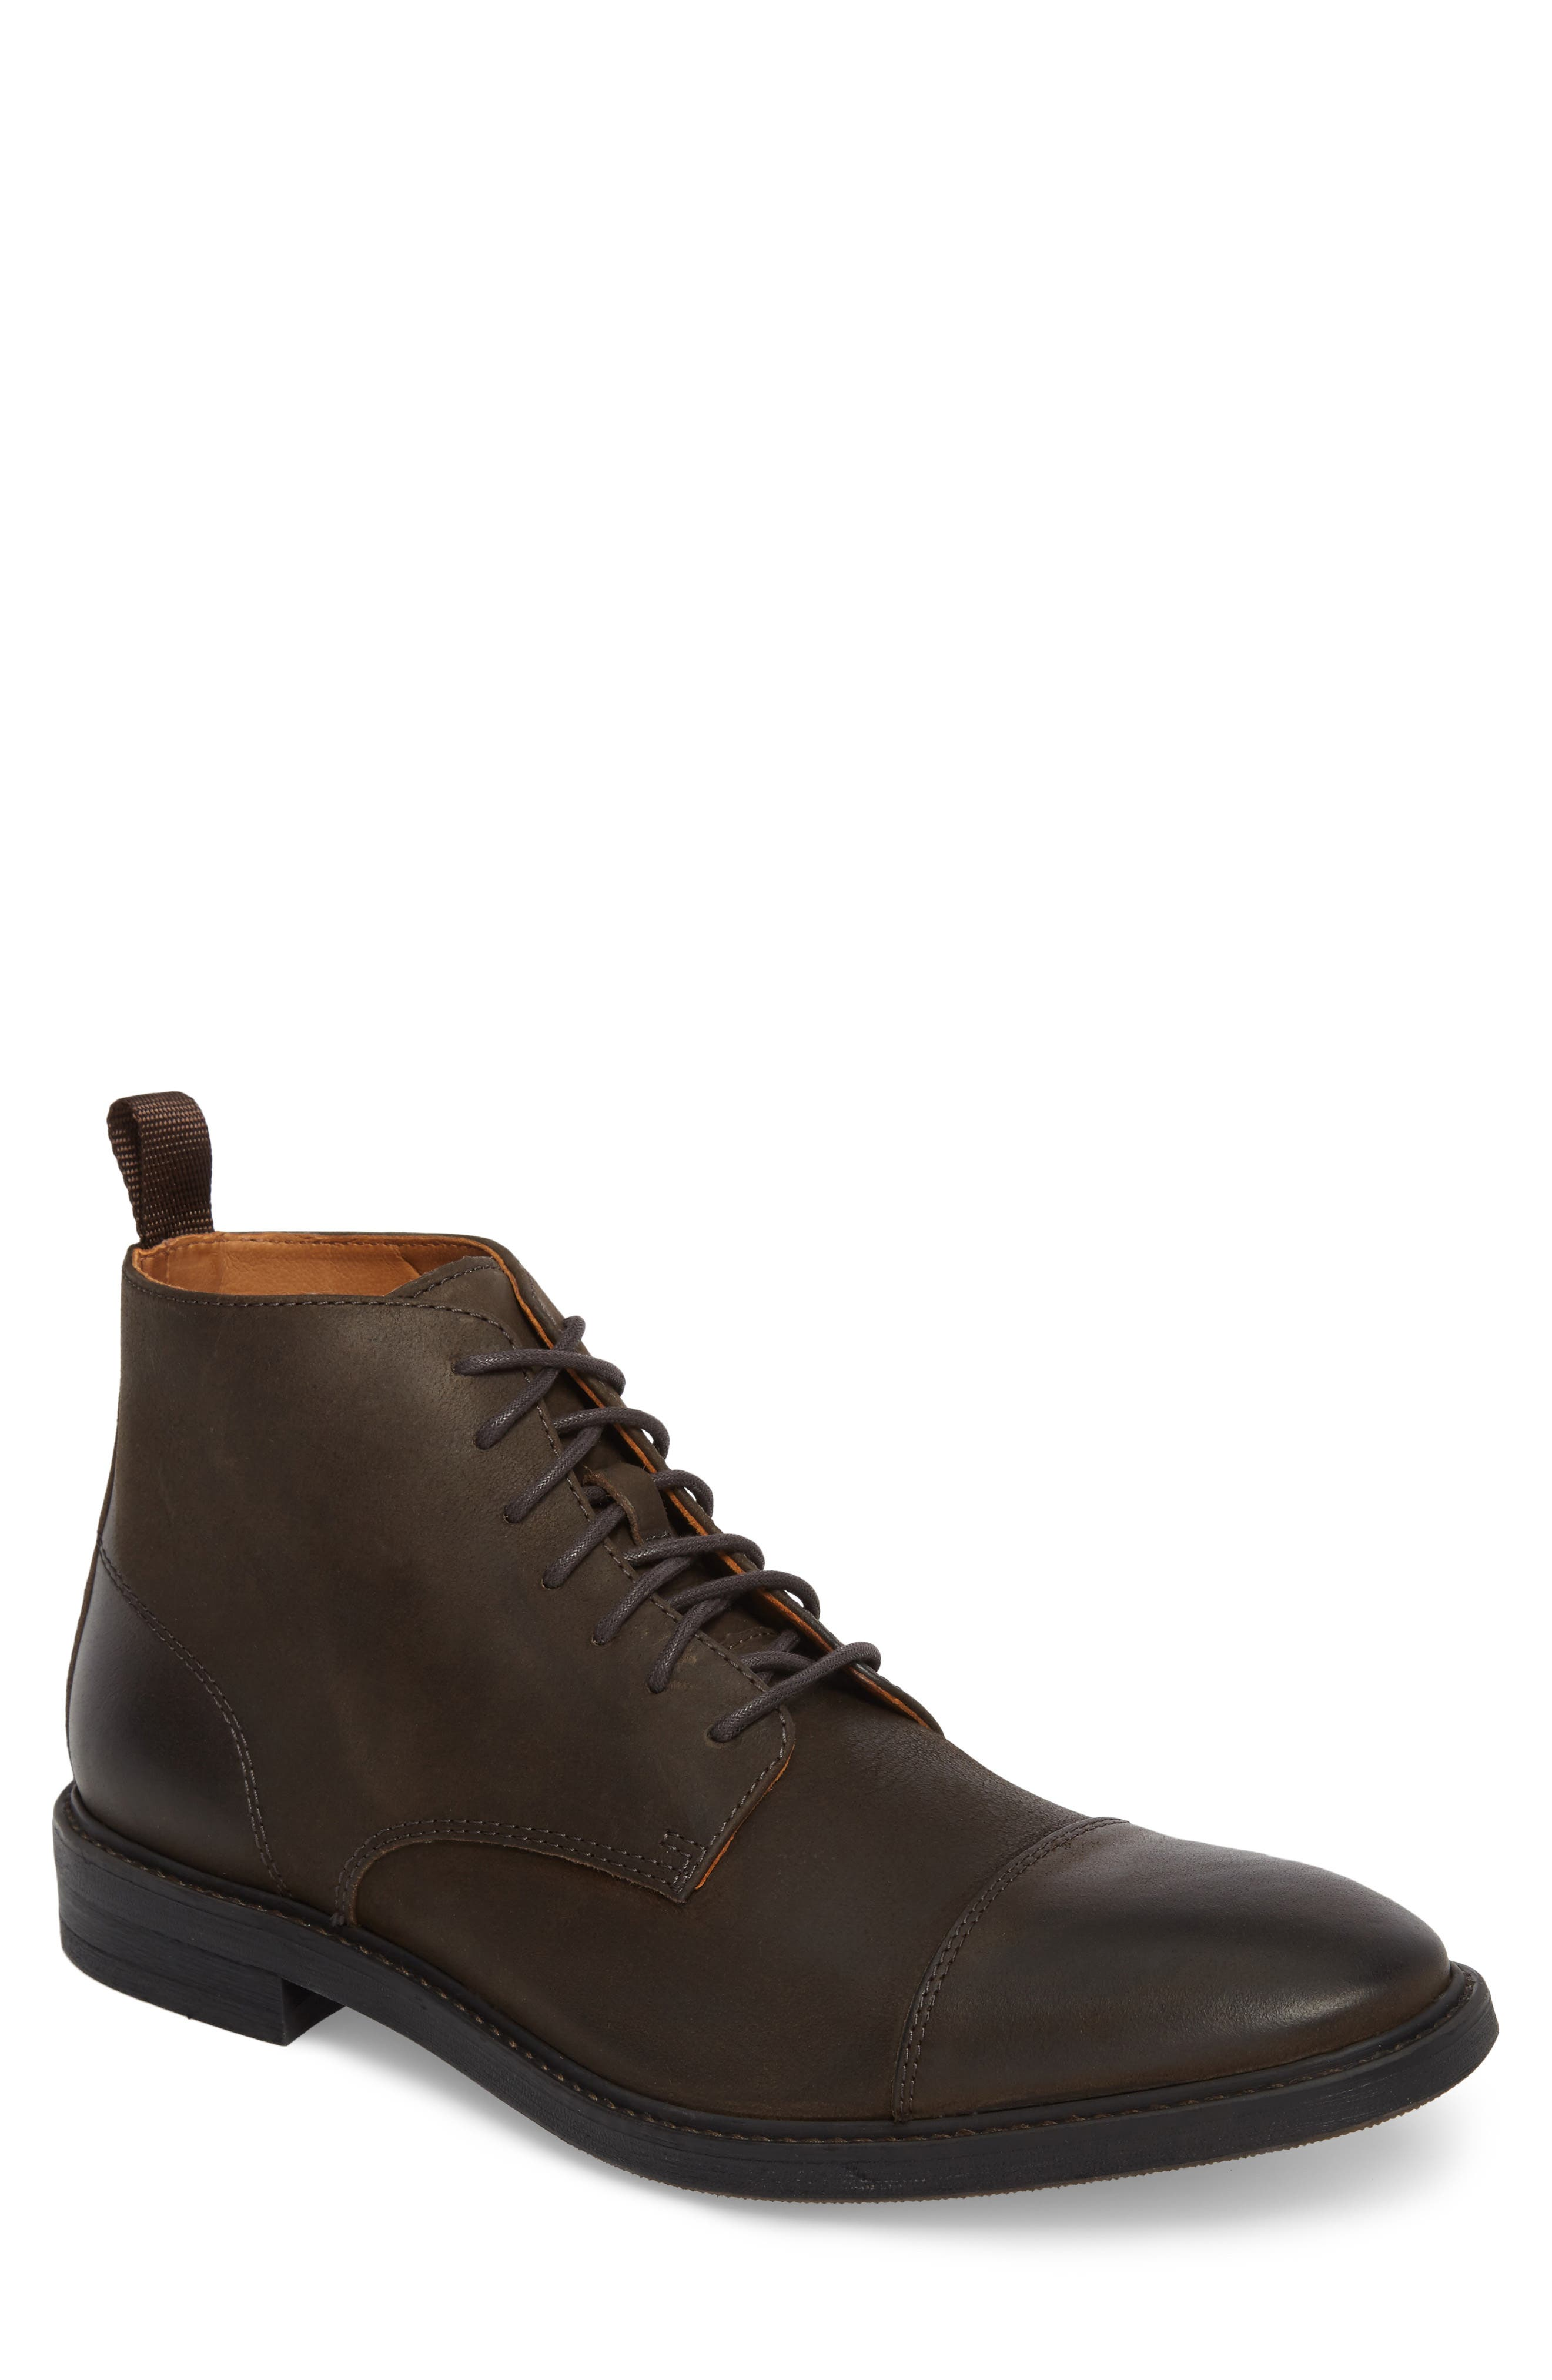 Pateros Cap Toe Boot,                             Main thumbnail 1, color,                             Chocolate Leather